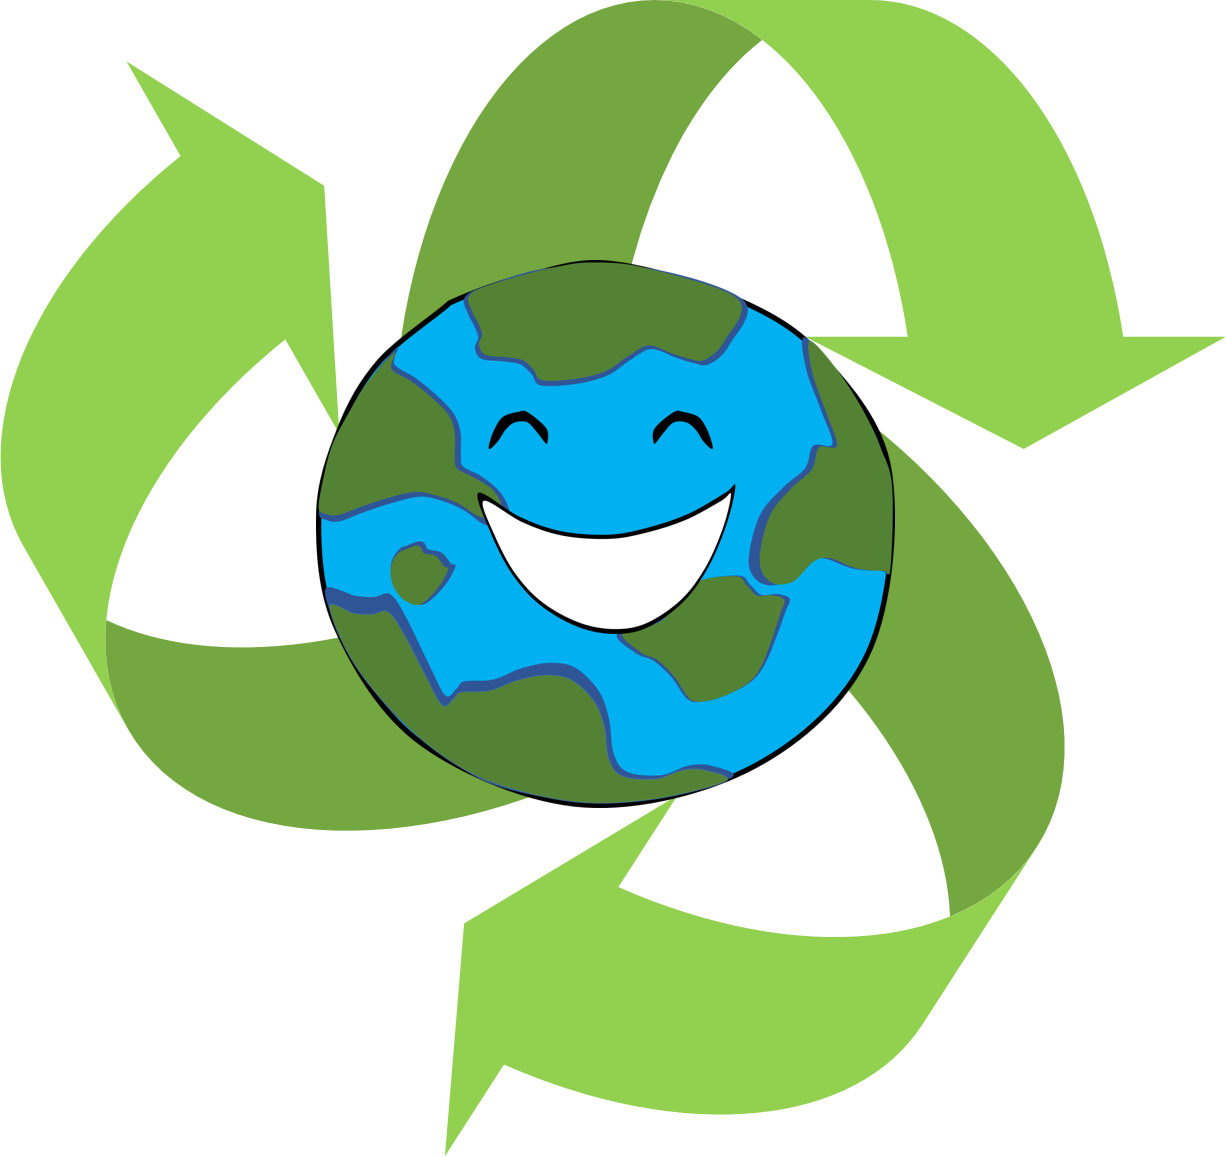 Reduce Reuse Recycle Clipart Club-Reduce reuse recycle clipart club-12